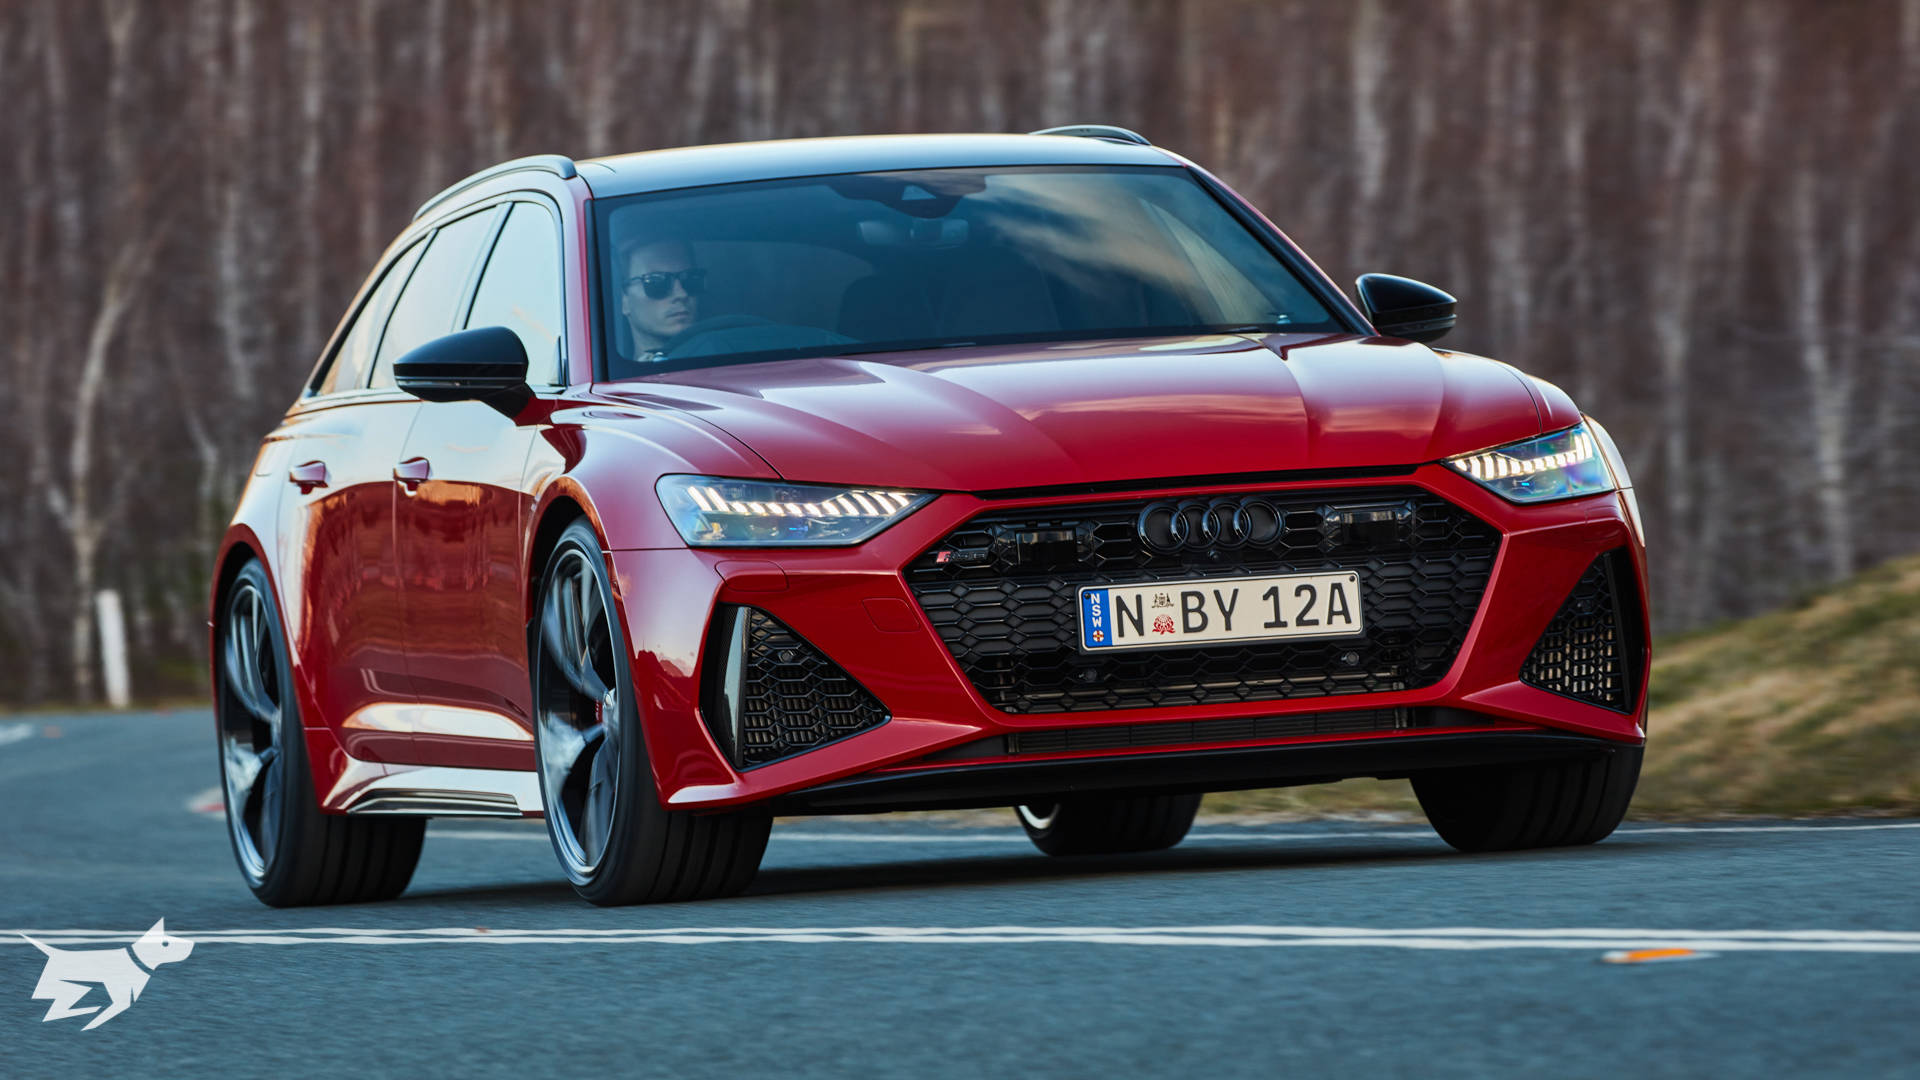 2020 Audi RS6 Avant in Tango Red driving on the road